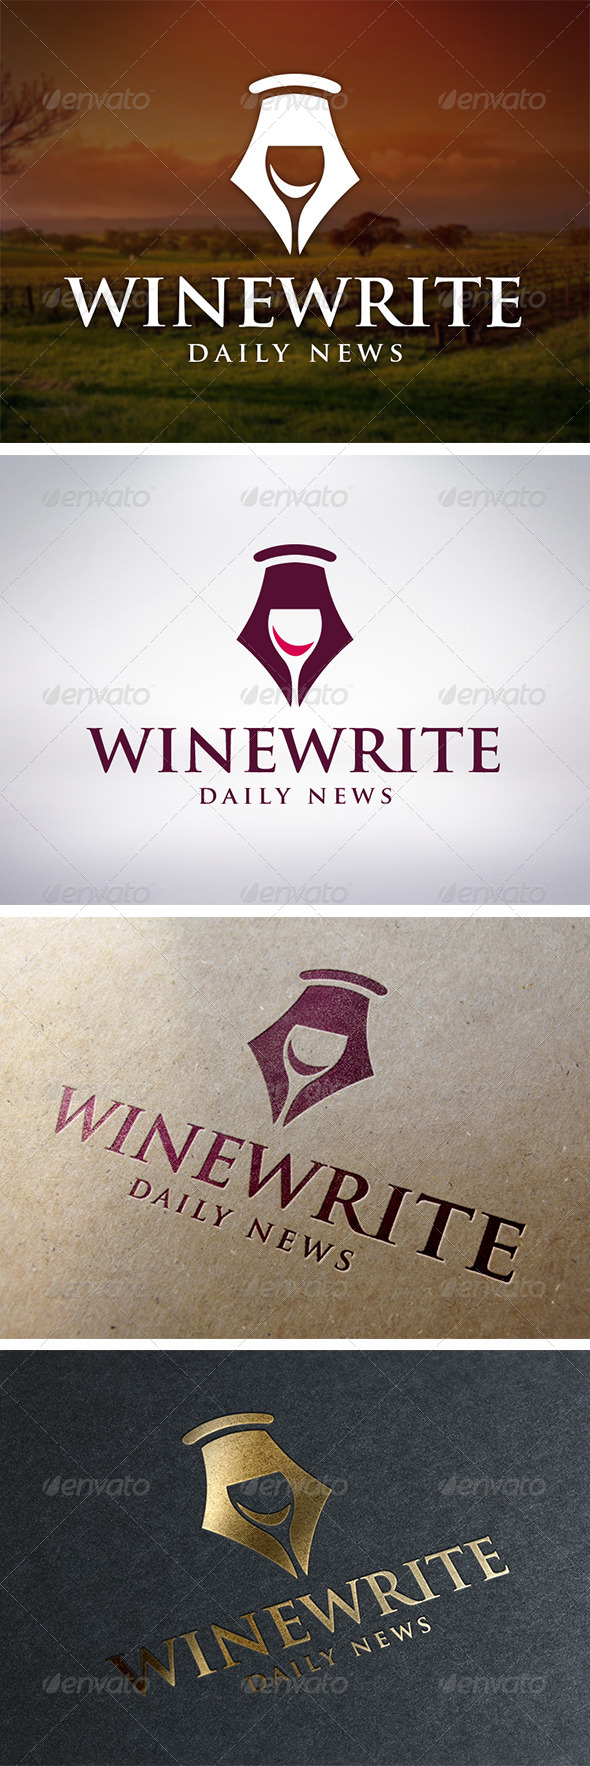 Wine Writer Logo Template - Food Logo Templates